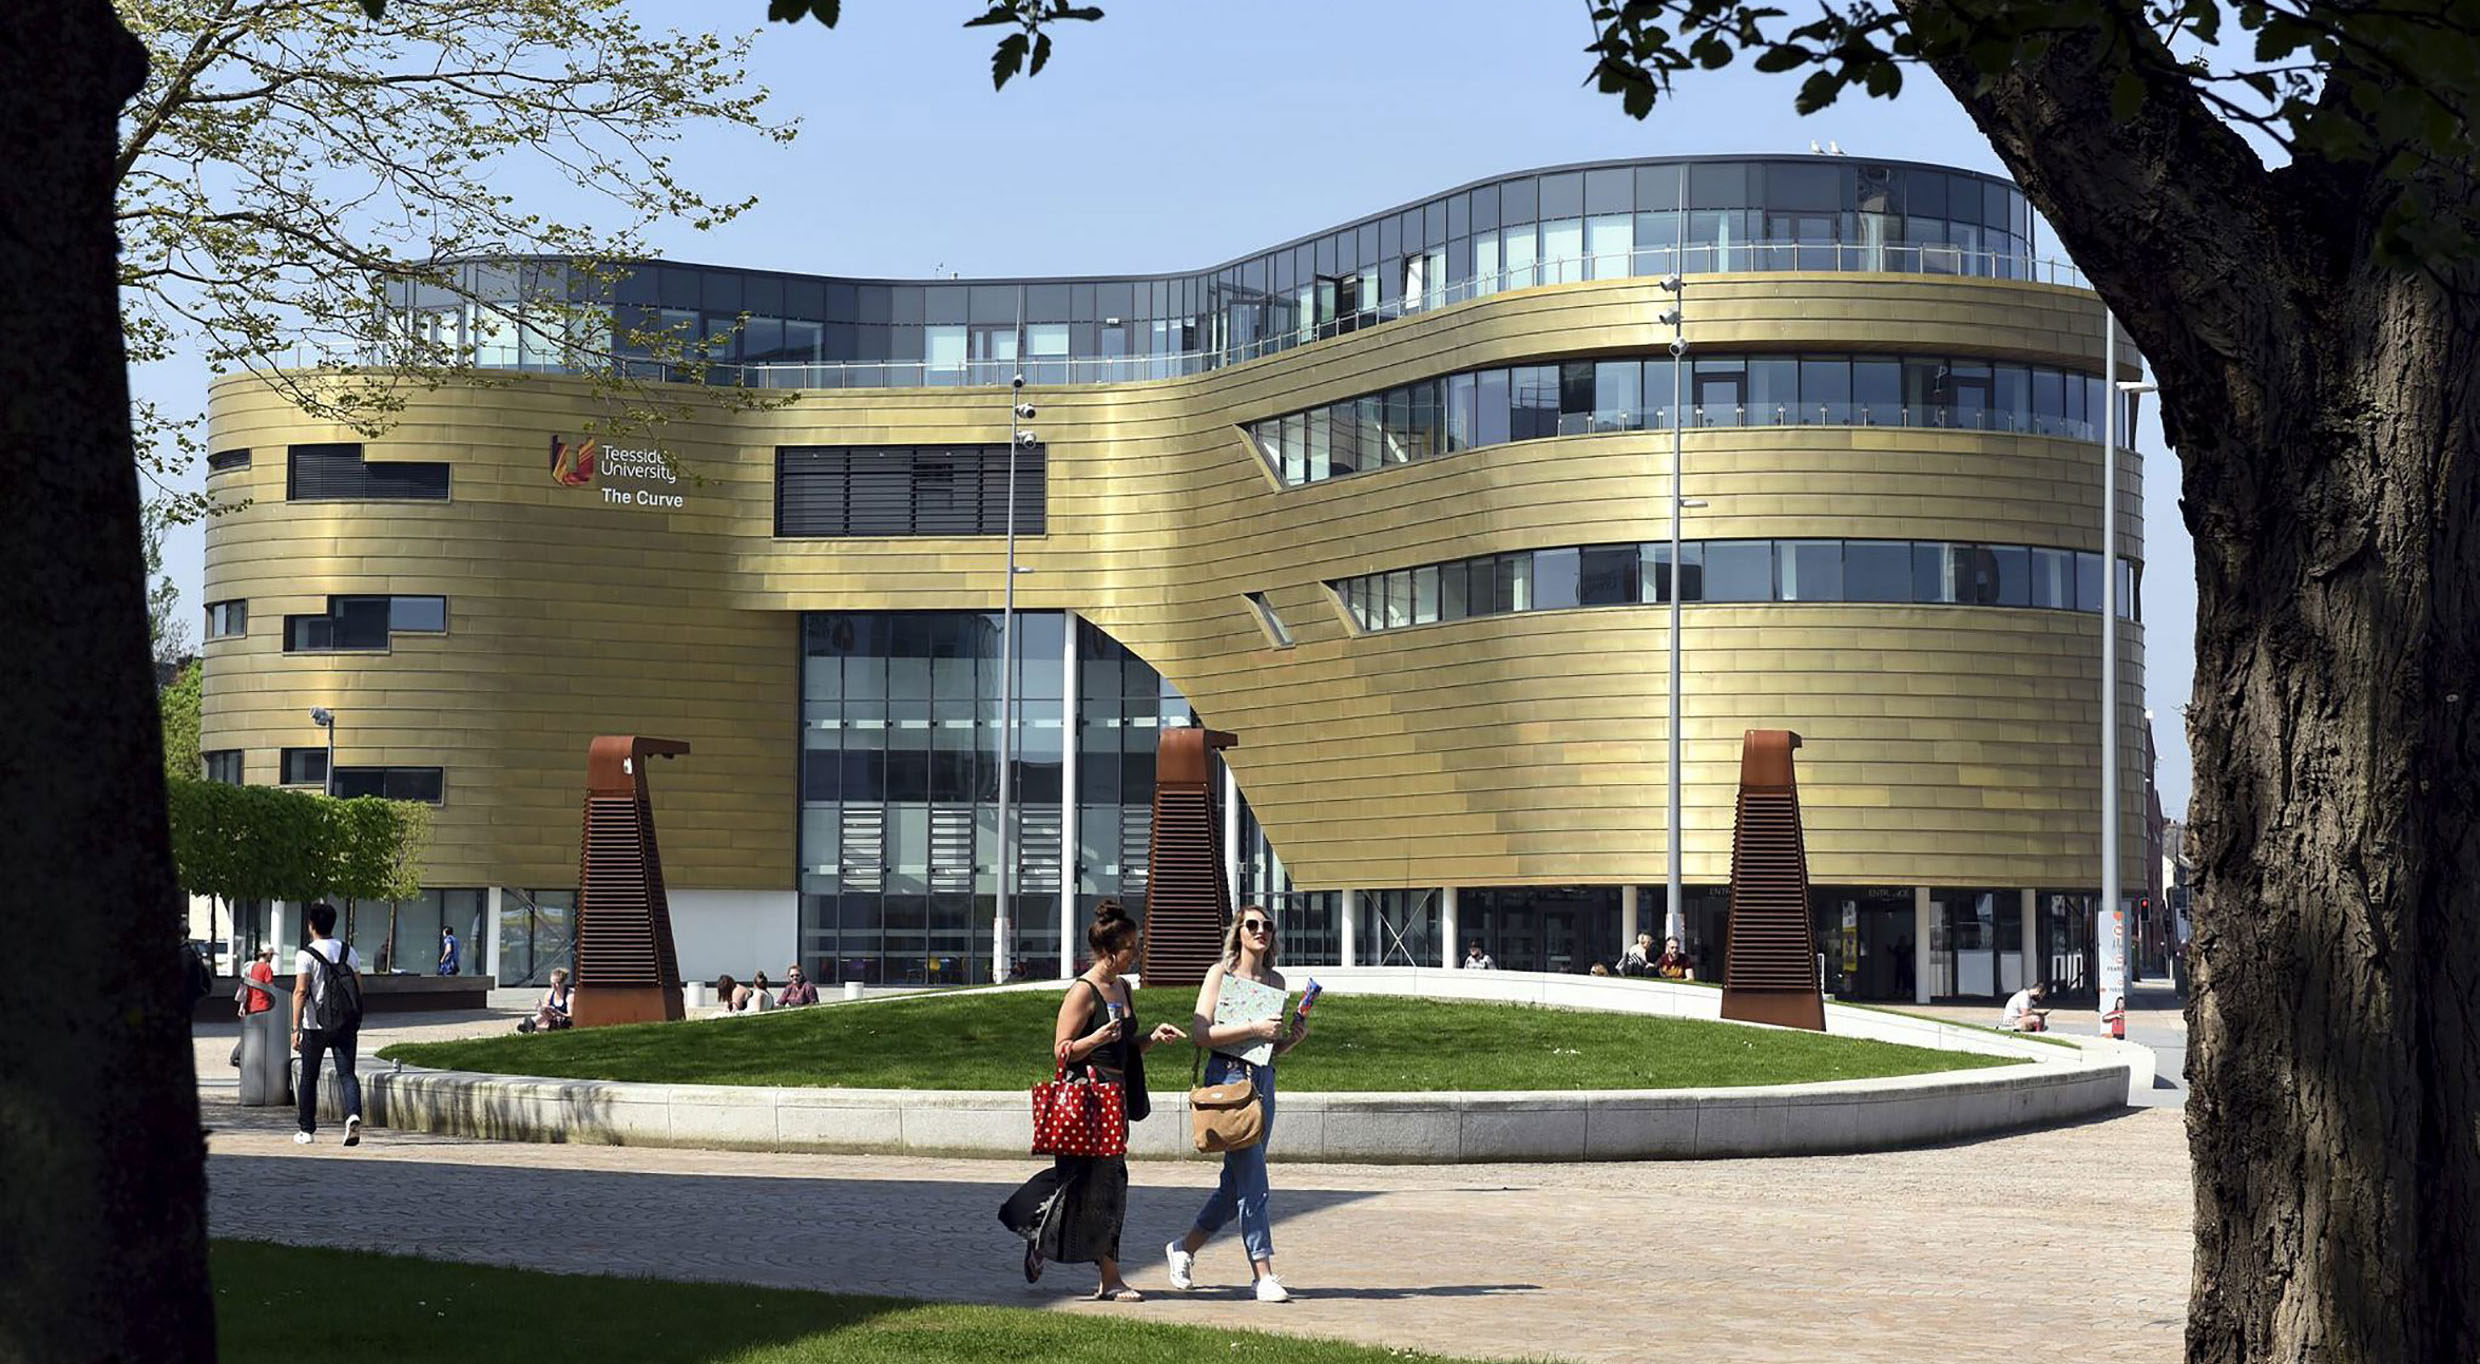 Link to Global accolade for Teesside University .